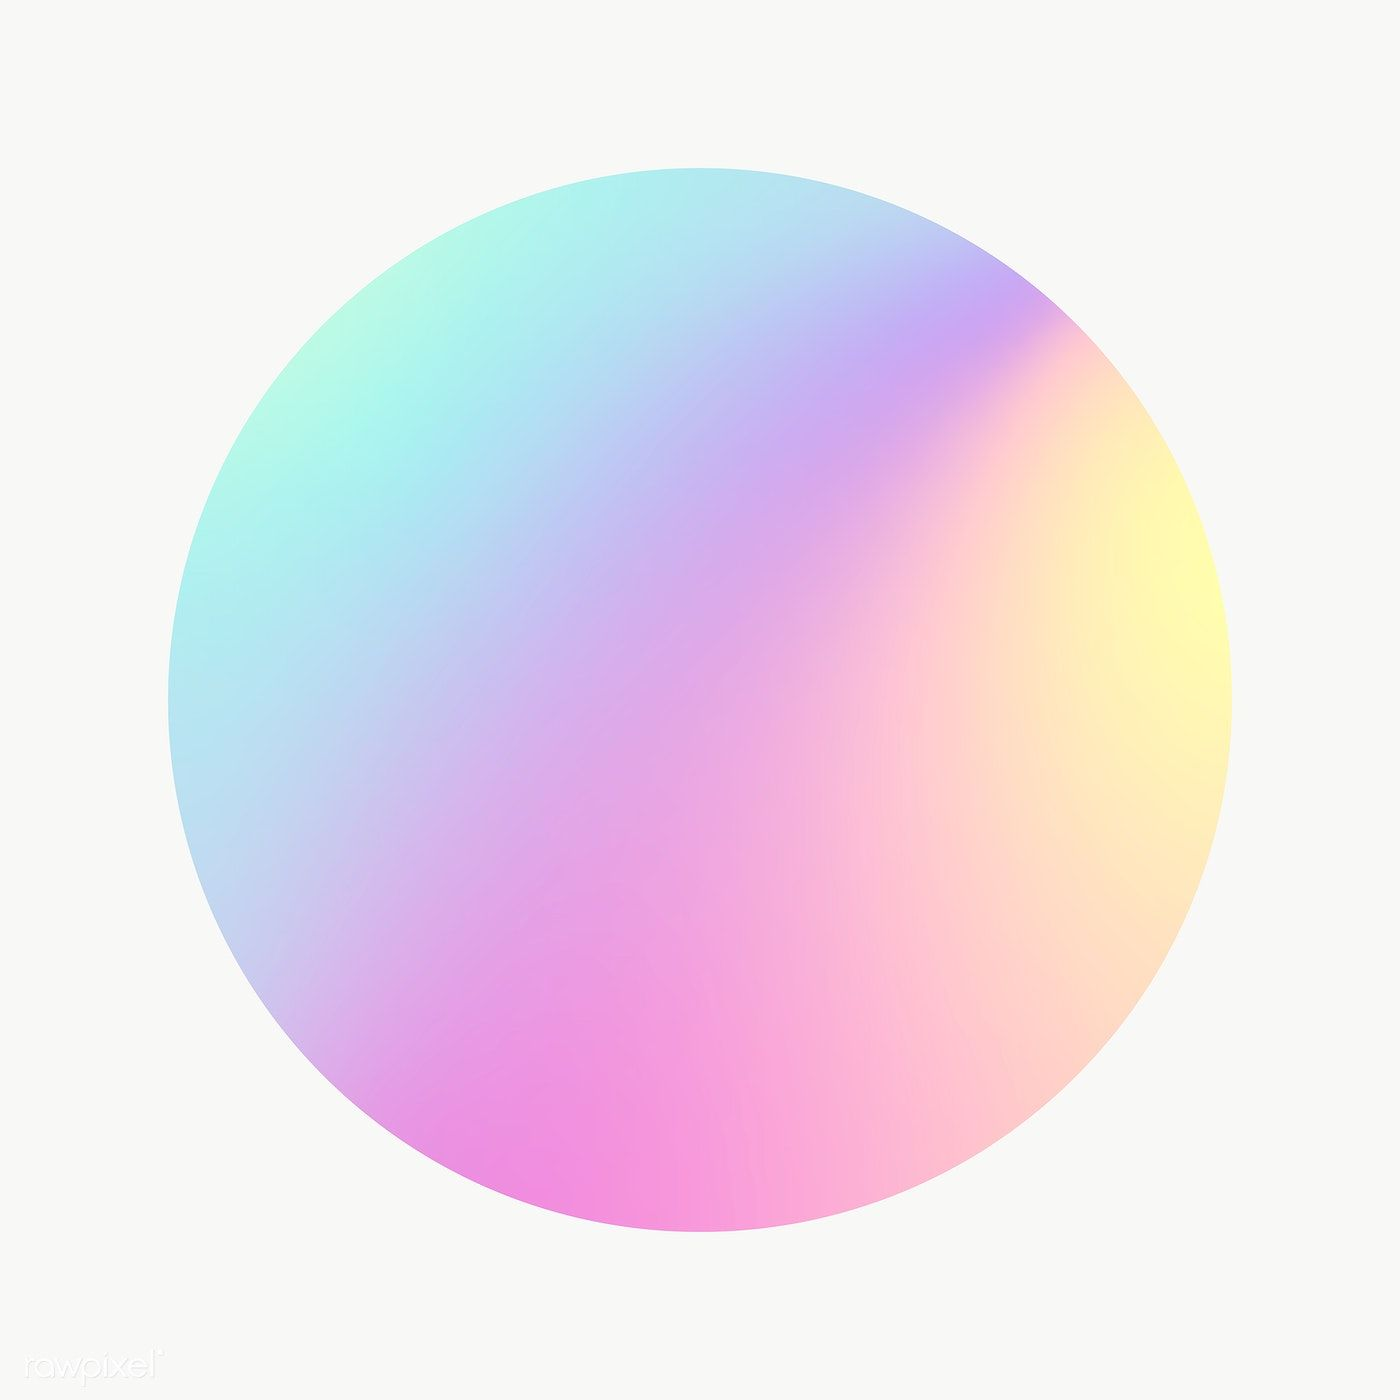 Colorful Round Gradient Element Transparent Png Free Image By Rawpixel Com Nunny Gradient Stock Images Free Png